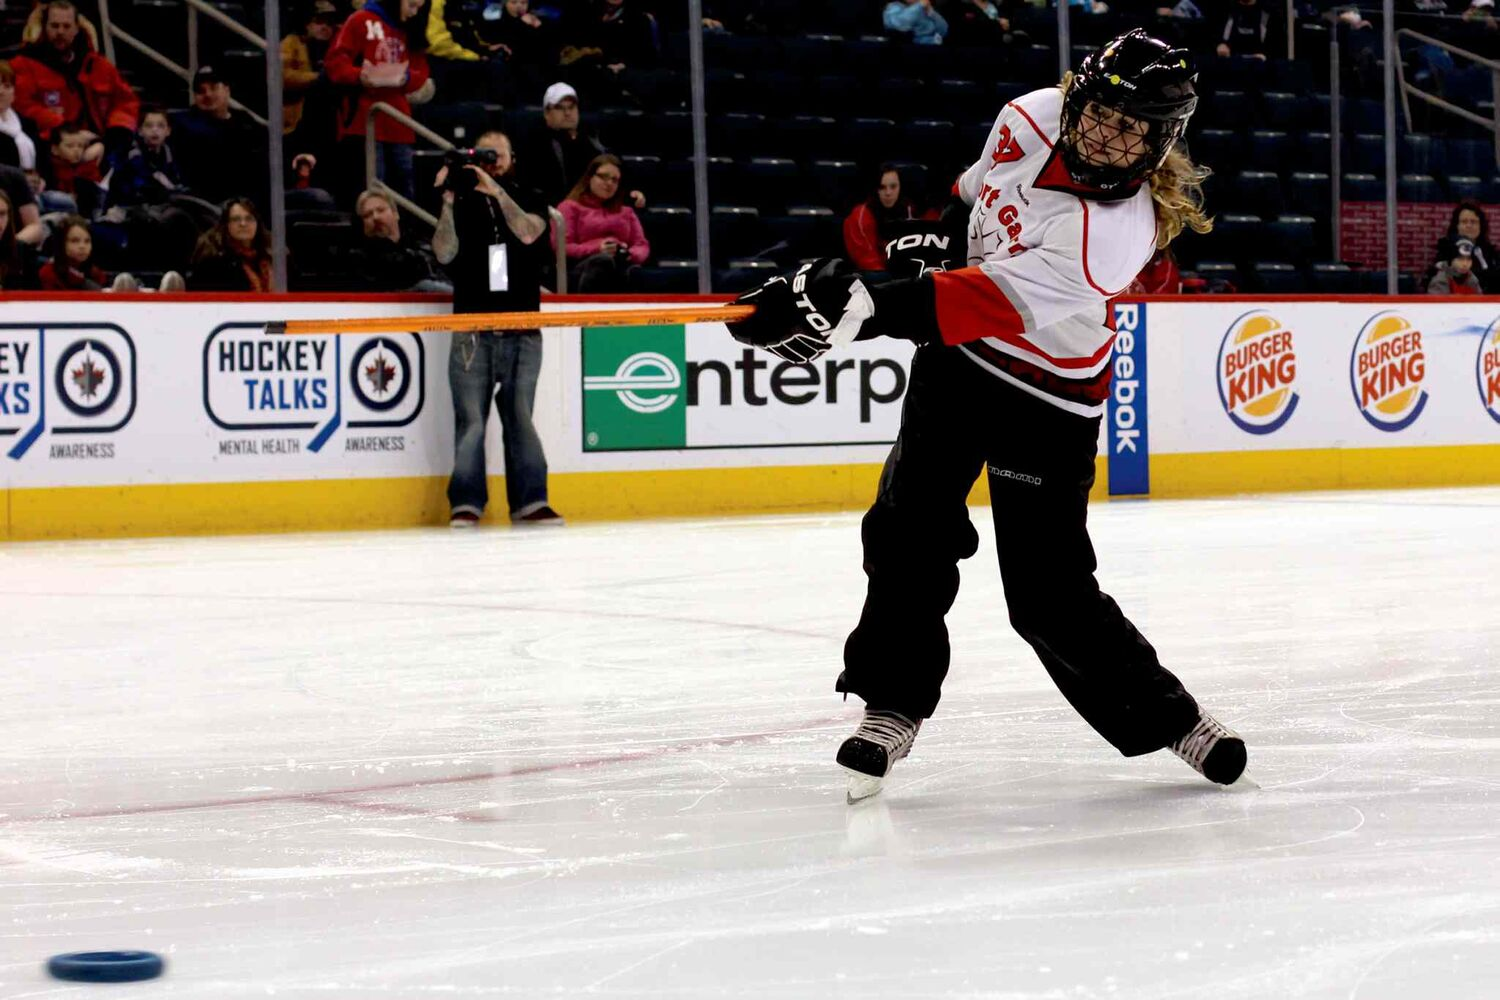 Shea Hlady  of the Fort Garry Fierce takes part in the Hardest Shot Competition at the Winnipeg Ringette League's all-star game at the MTS Centre.  (Jordan Thompson)